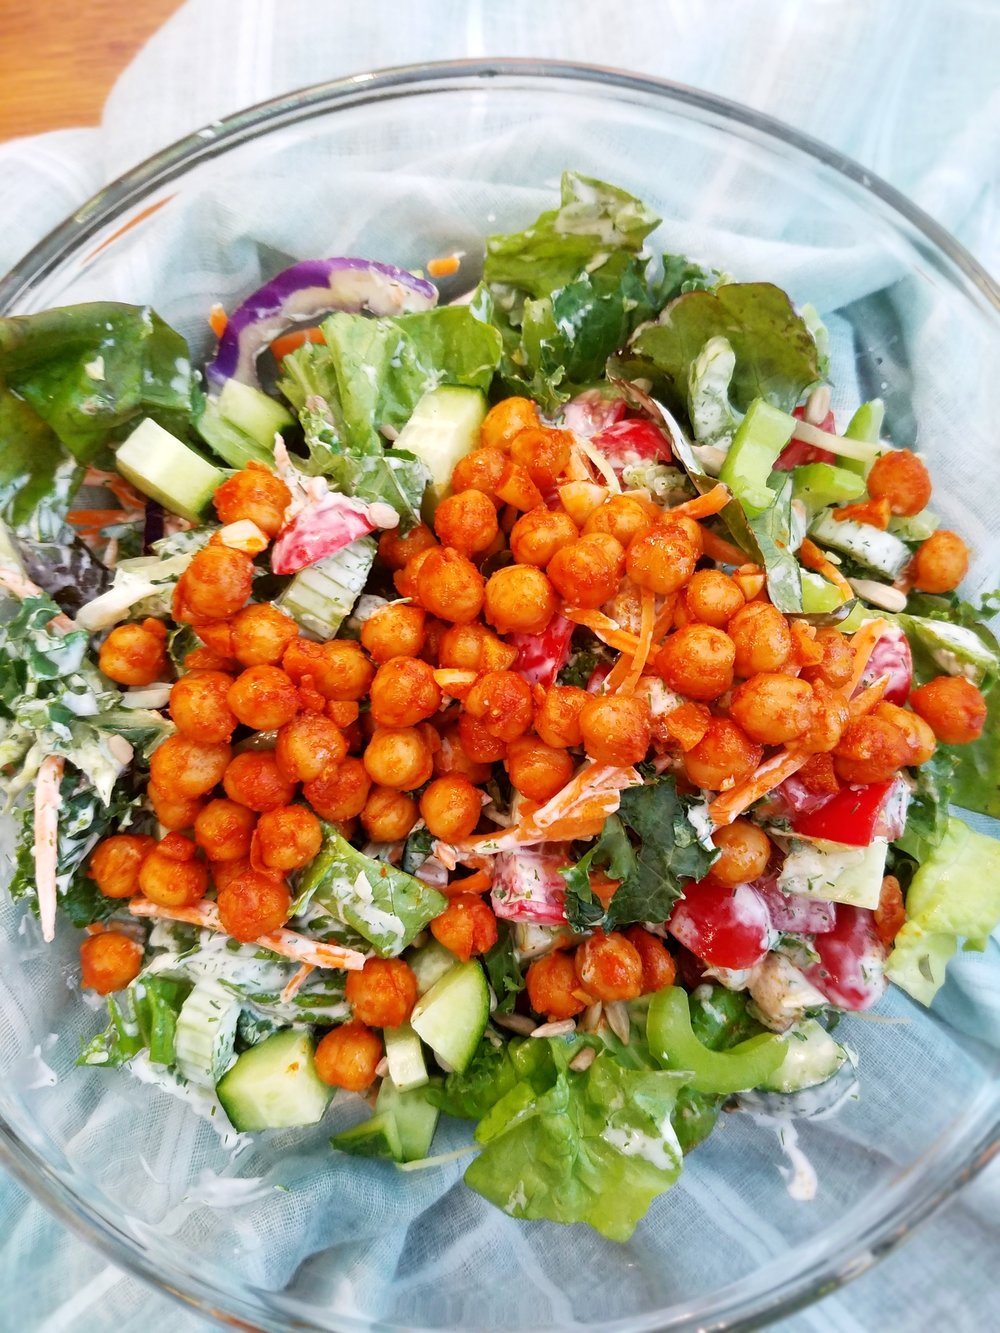 Vegan Baconed Chickpea Salad with Ranch Dressing.jpg